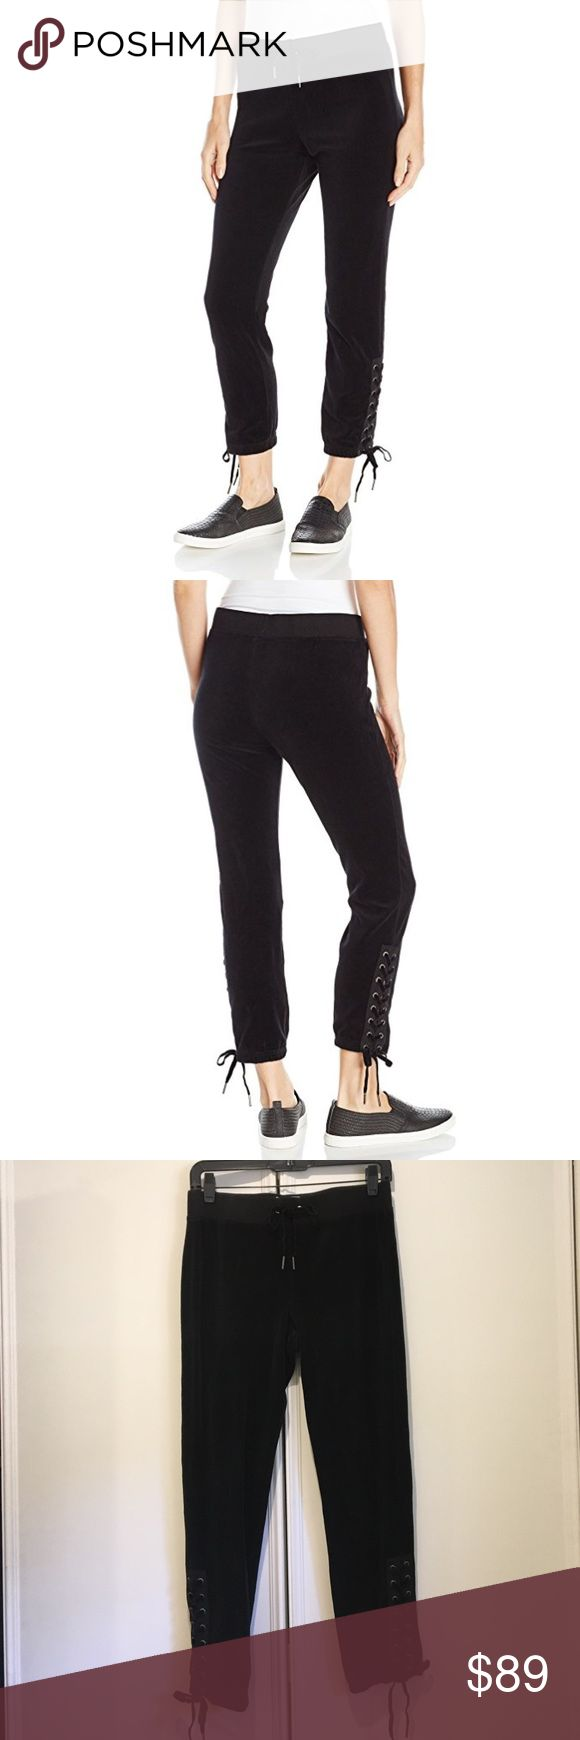 Pam & Gela Black Lace Up Jogger Sweatpants XS/P Cozy joggers with Lace Up detail by Pam & Gela. Fit true to size. Can be dressed up or dressed down with sneakers or heels. Pam & Gela Pants Track Pants & Joggers